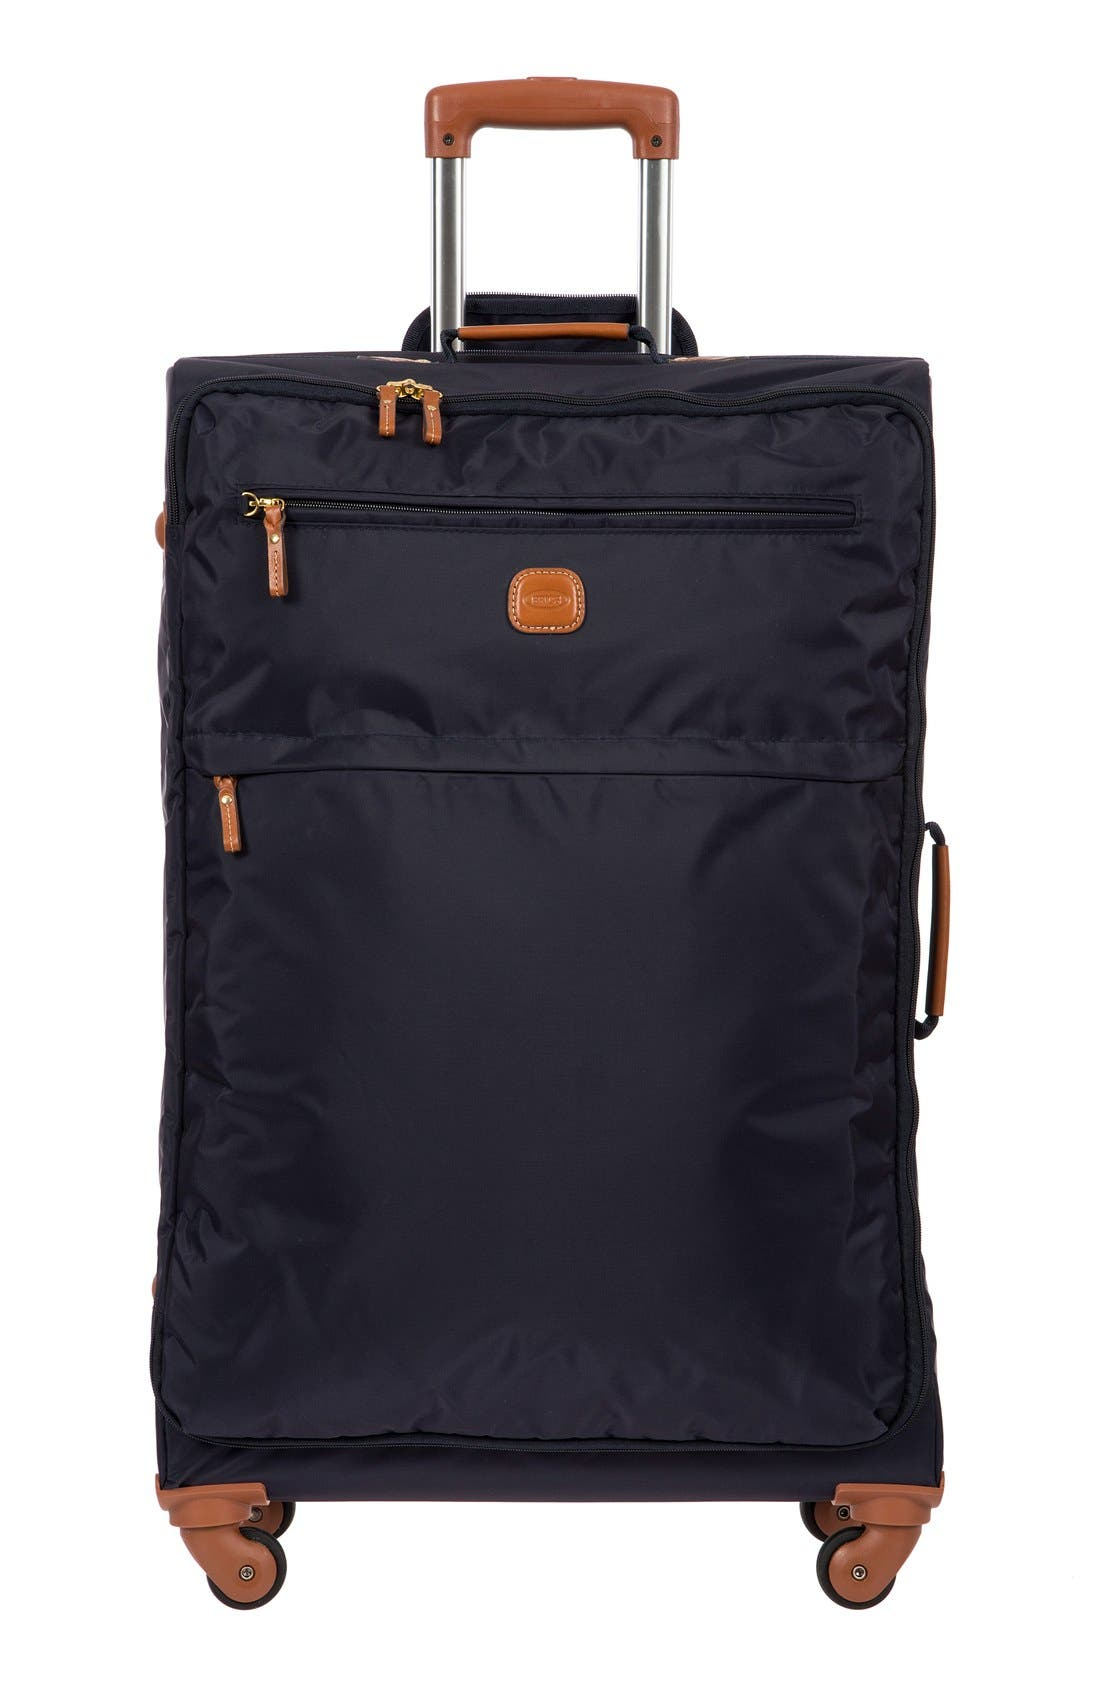 BRICS X-Bag 30 Inch Spinner Suitcase